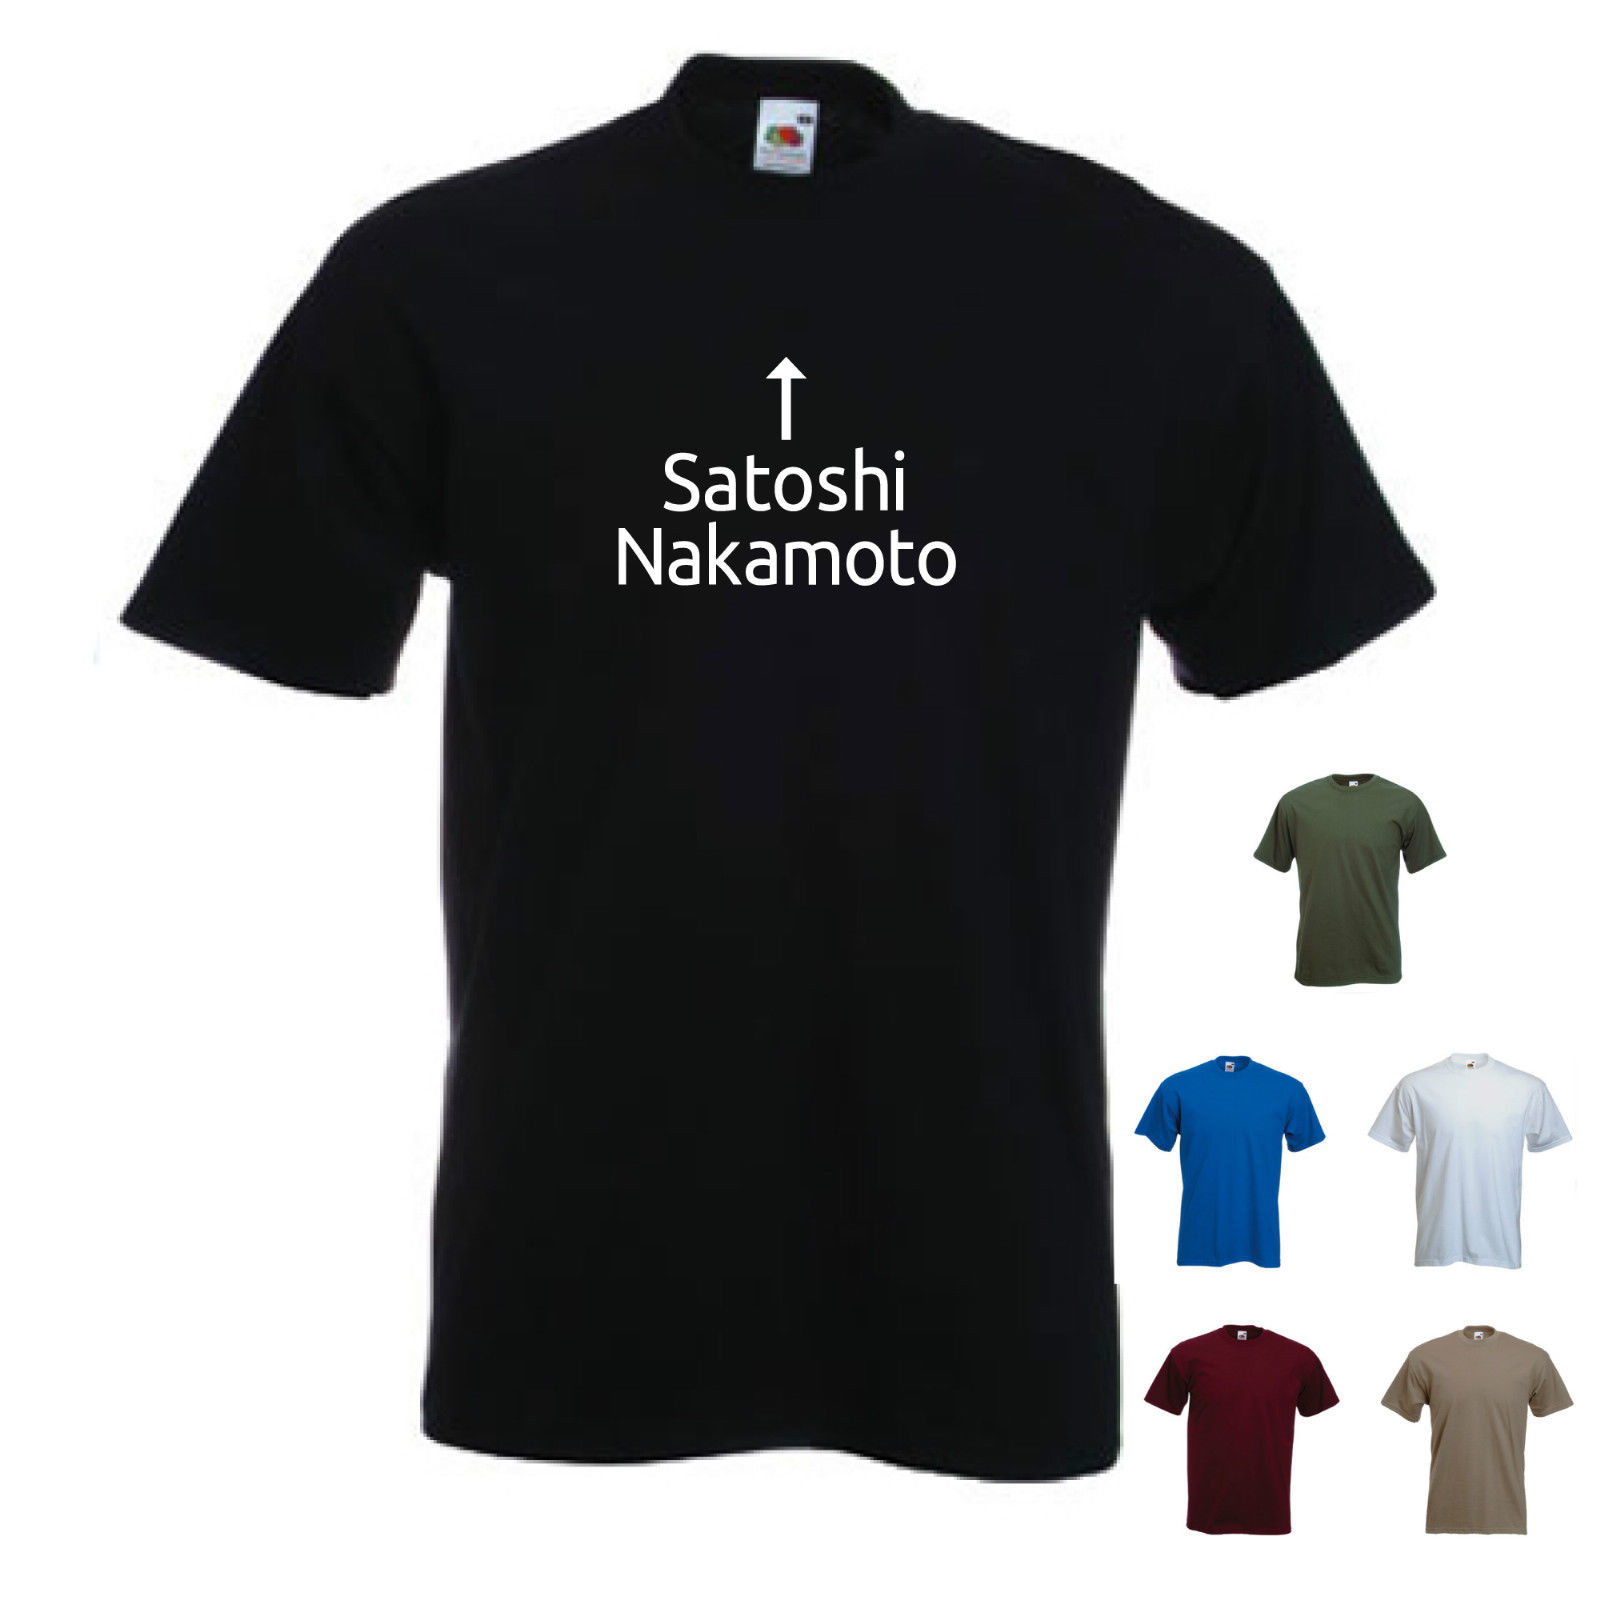 Satoshi Nakamoto. Bitcoin P2P Digital Currency / Mining mens T-shirt Tee New T Shirts Funny Tops Unisex